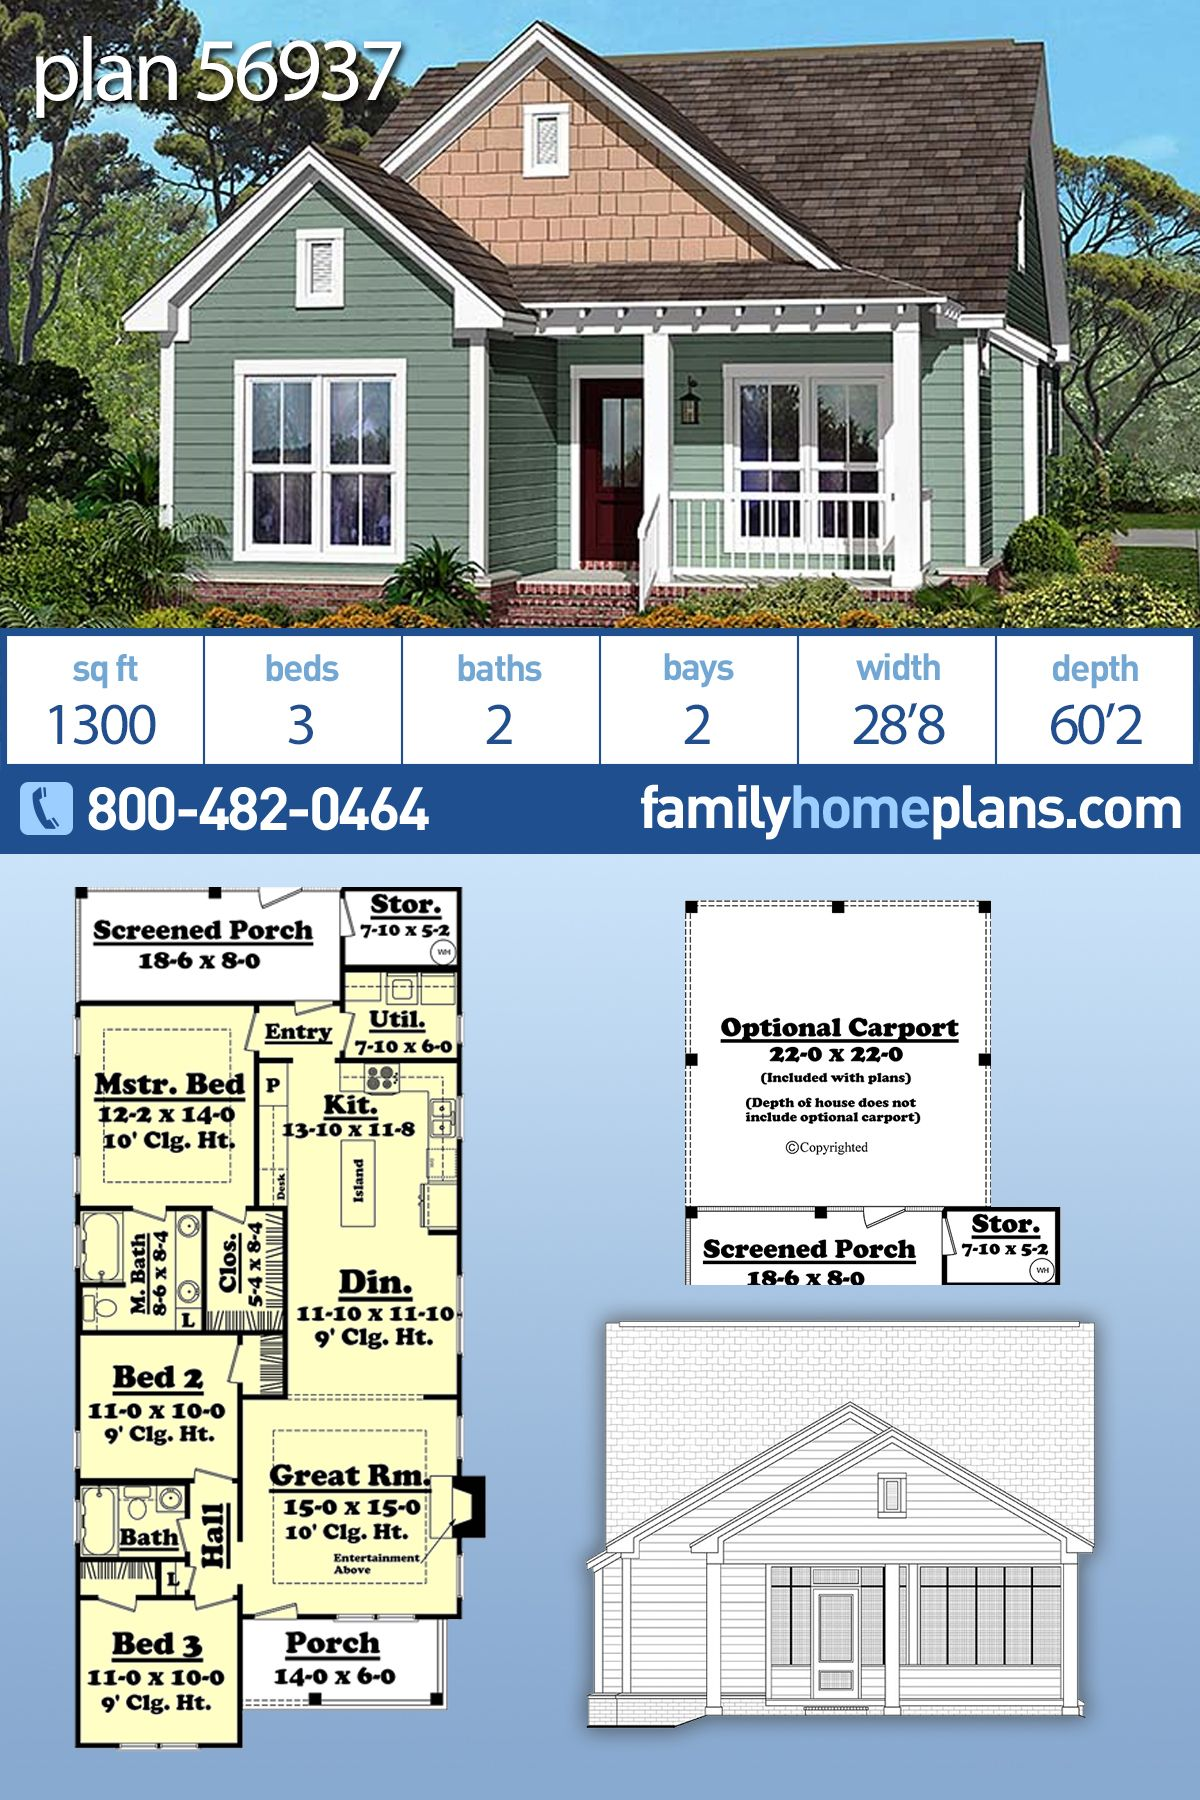 Traditional Style House Plan 56937 With 3 Bed 2 Bath 2 Car Garage Craftsman Style House Plans Cottage Plan Family House Plans